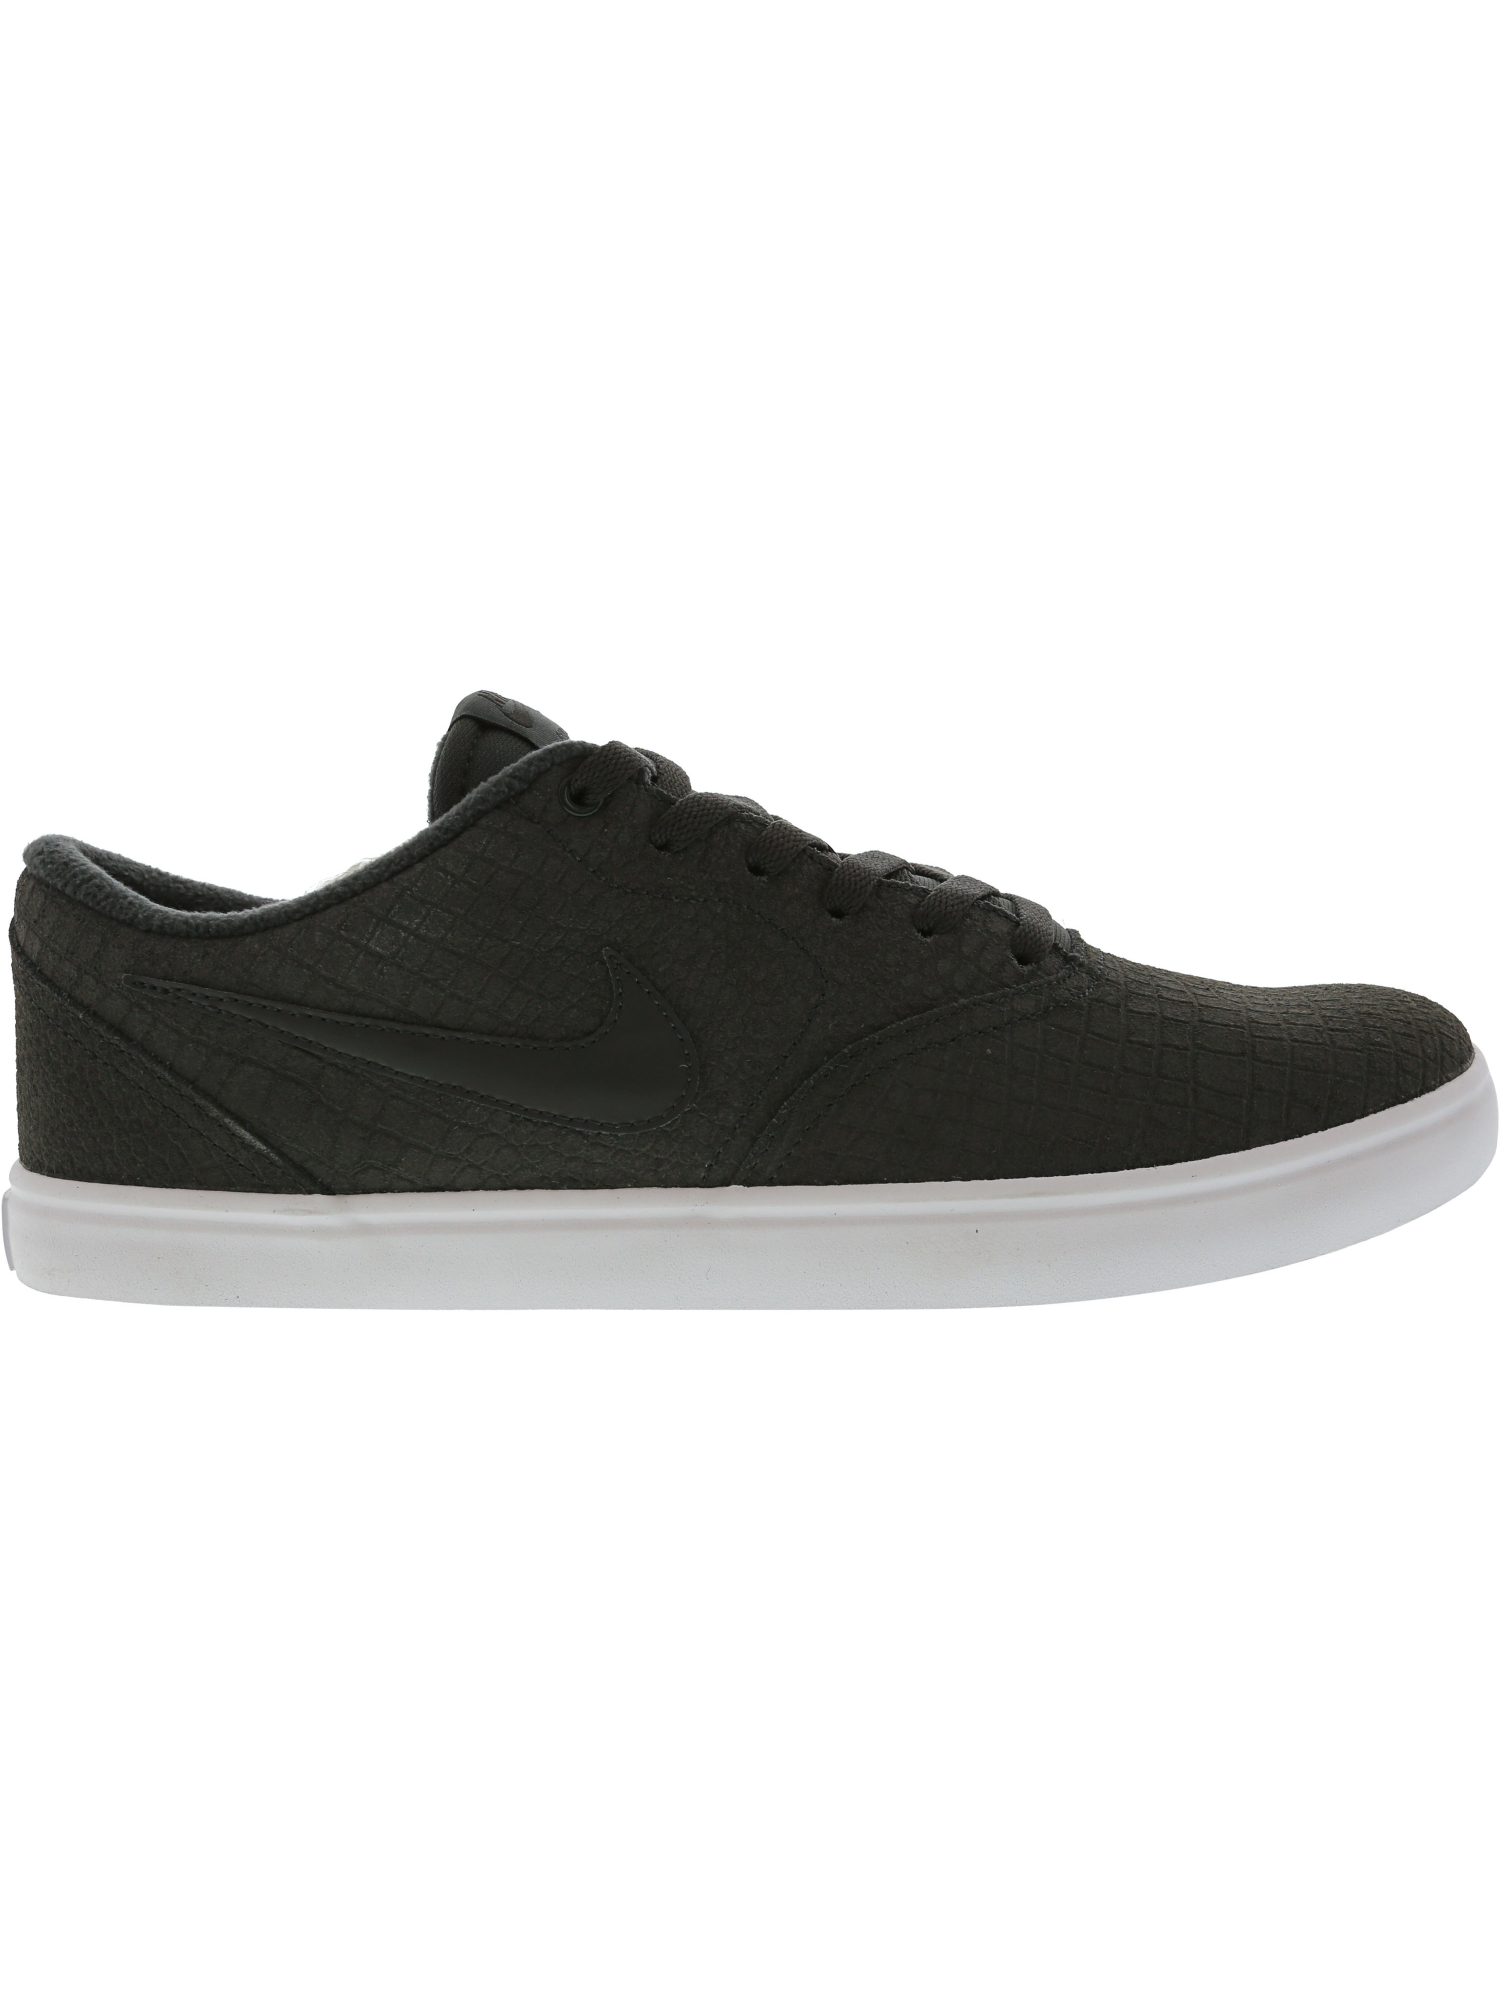 0b600961bd5 Nike Men s Sb Check Solar Ankle-High Leather Skateboarding Shoe